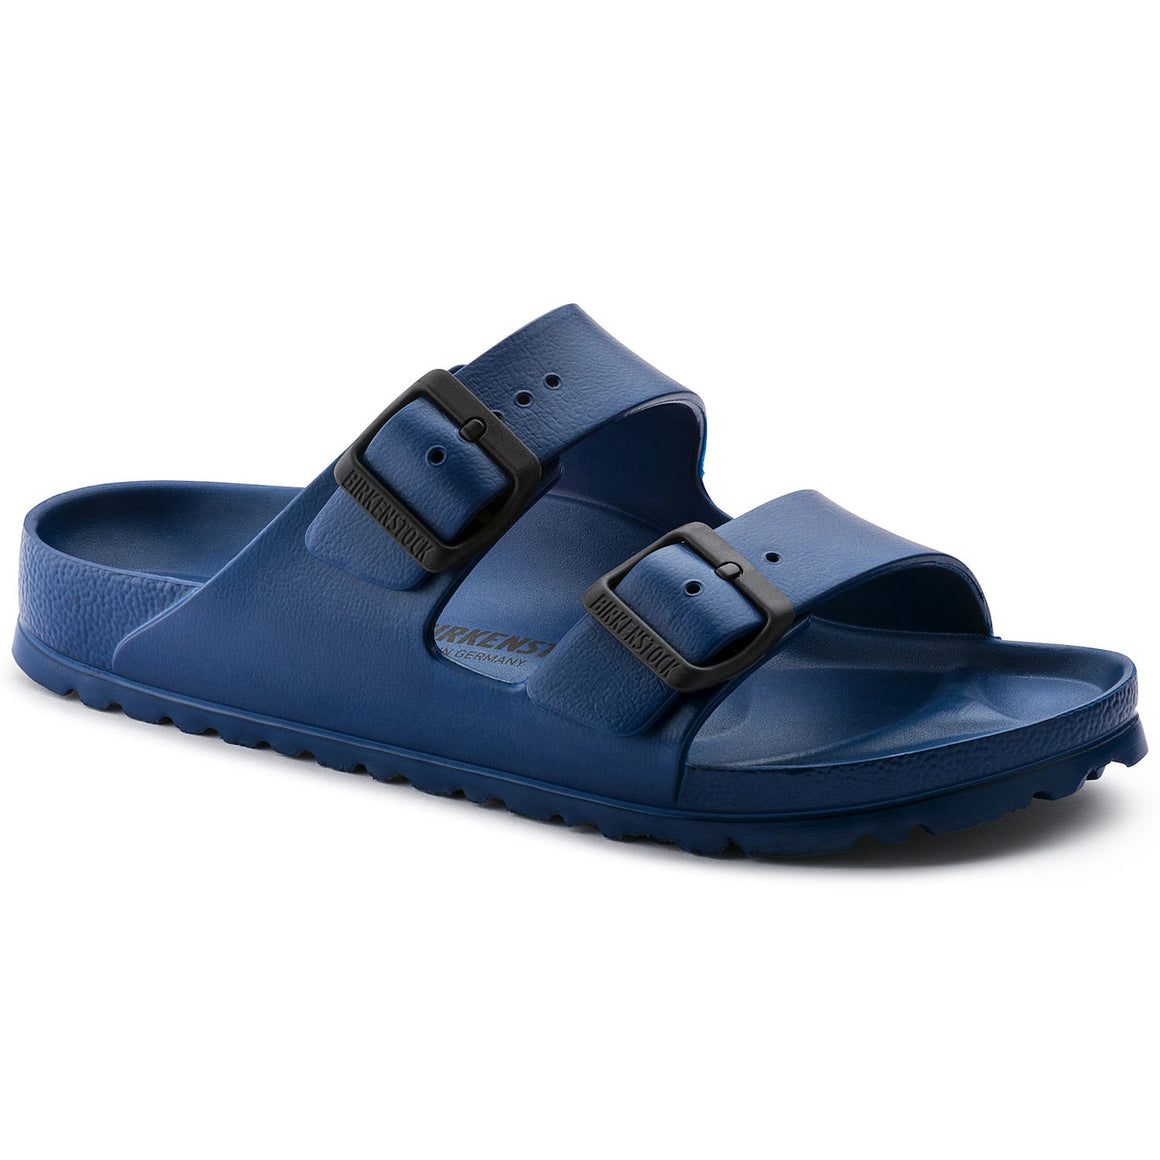 Birkenstock Women's Arizona EVA Sandal Navy - 129433 - ShoeShackOnline